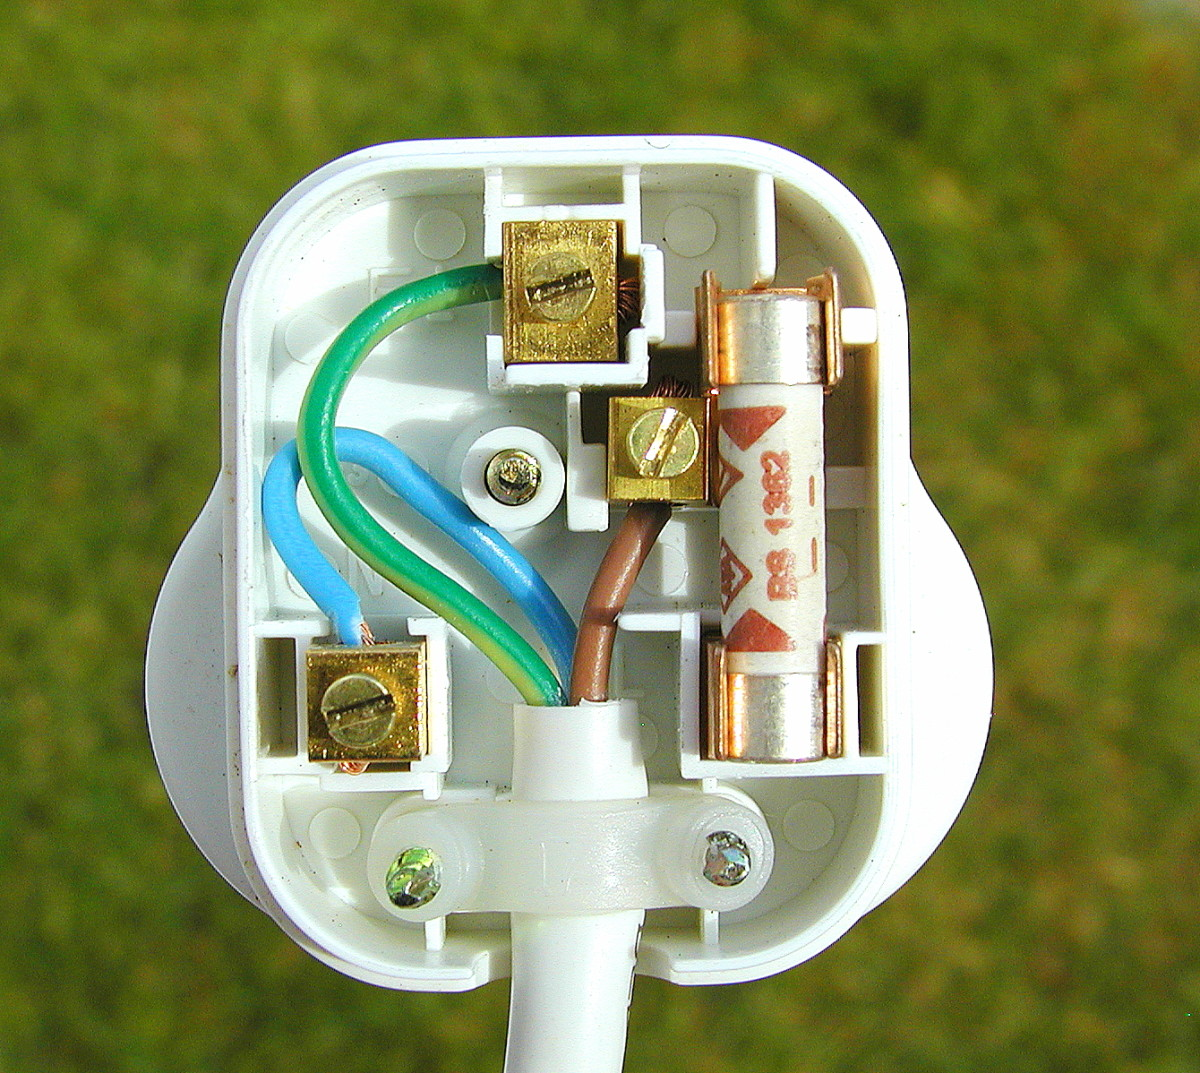 Electricity Wiring Troubleshooting Dengarden A Plug Safely 9 Easy Steps To Correctly And